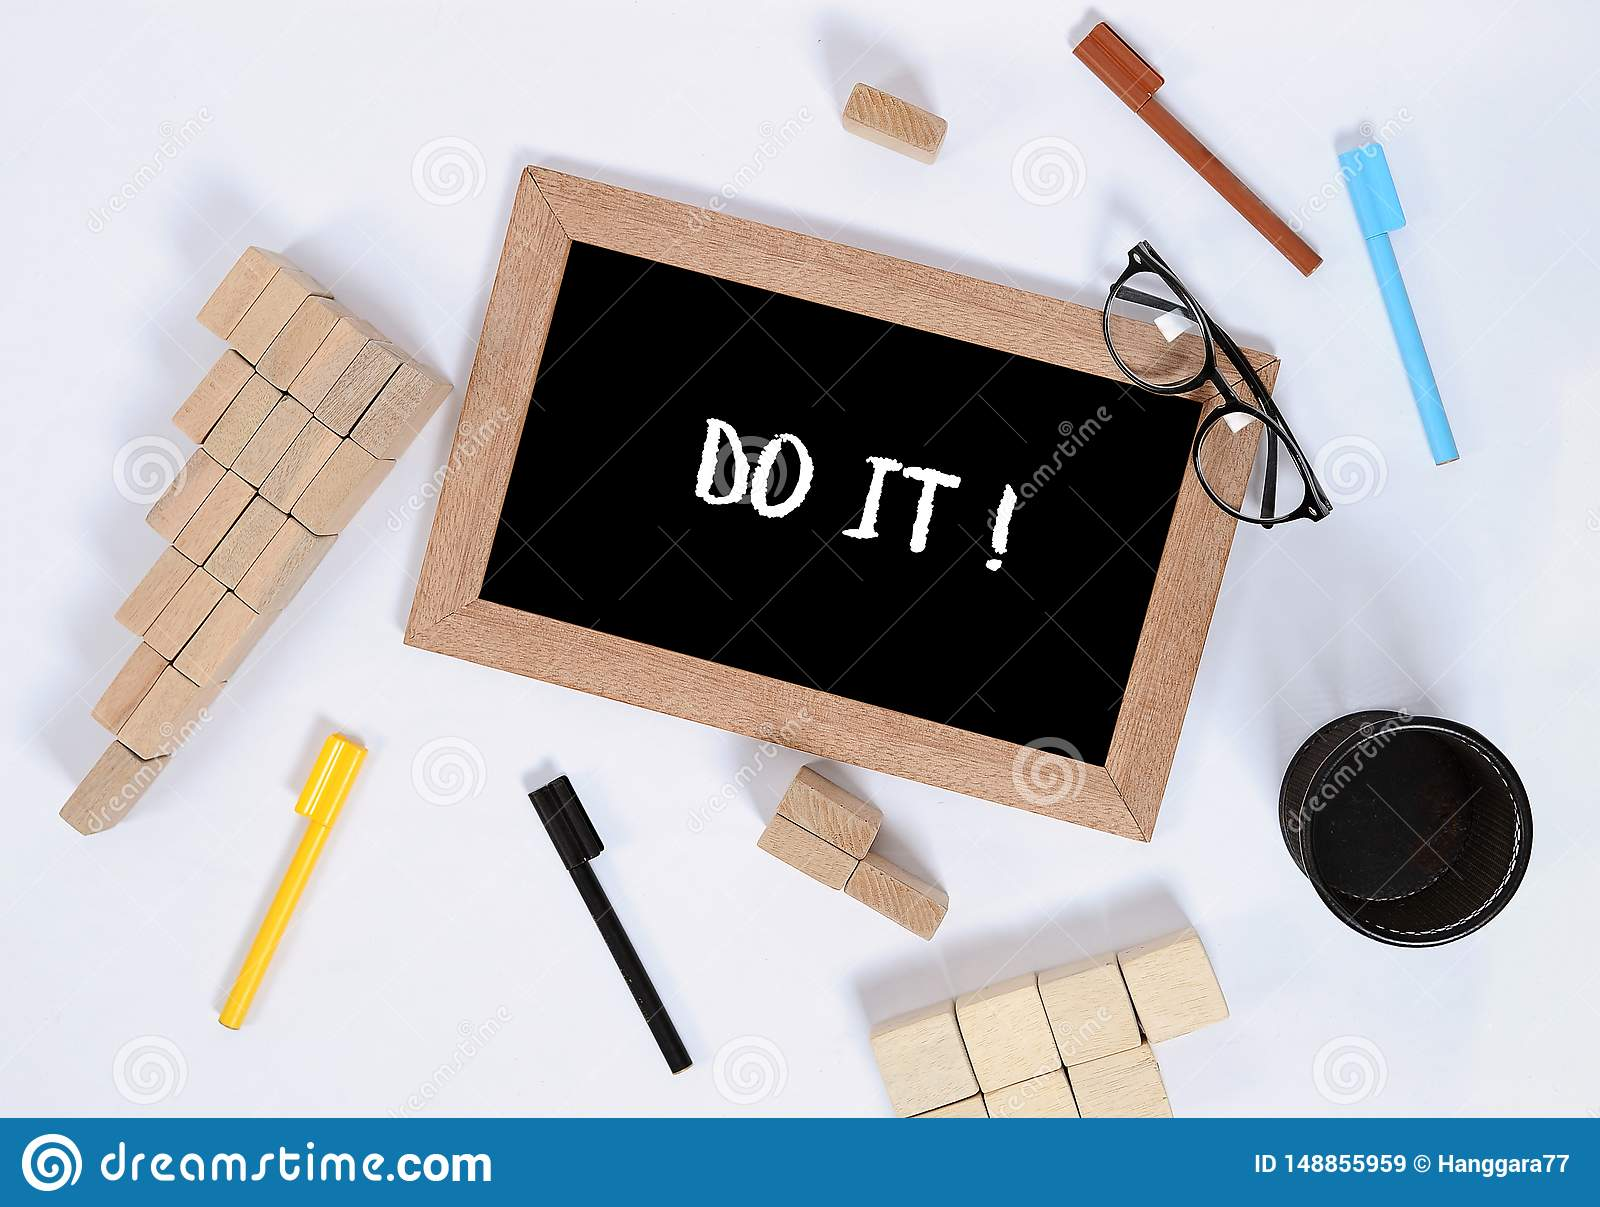 Do it text on blackboard with office accessories. Business motivation, inspiration concepts, pen and pencil case, wood block